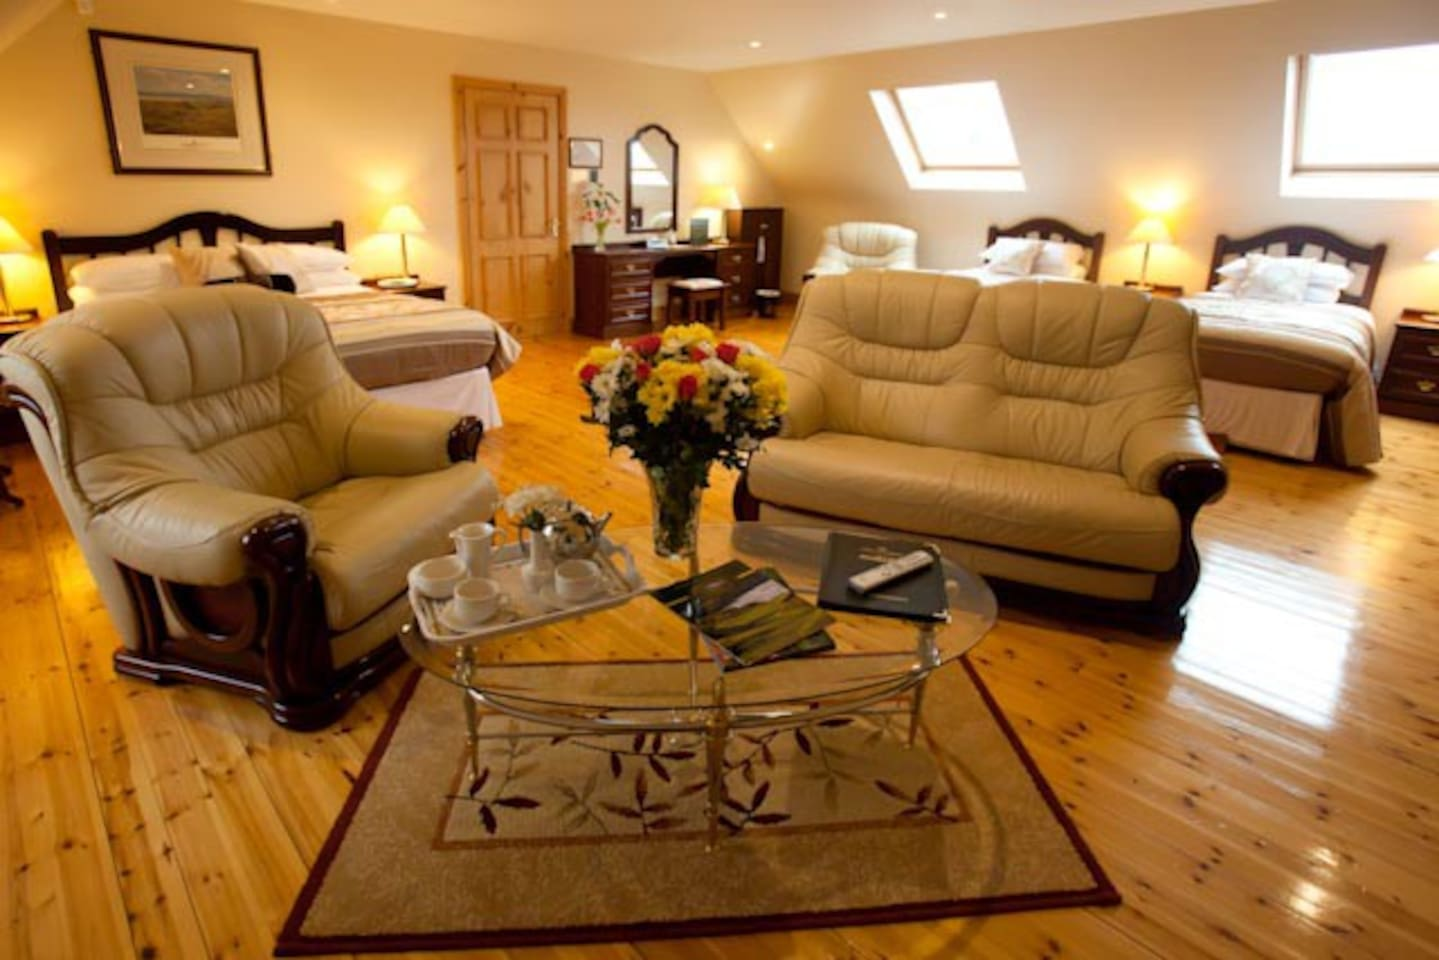 Master Suite Room at Ballybunion Guesthouse